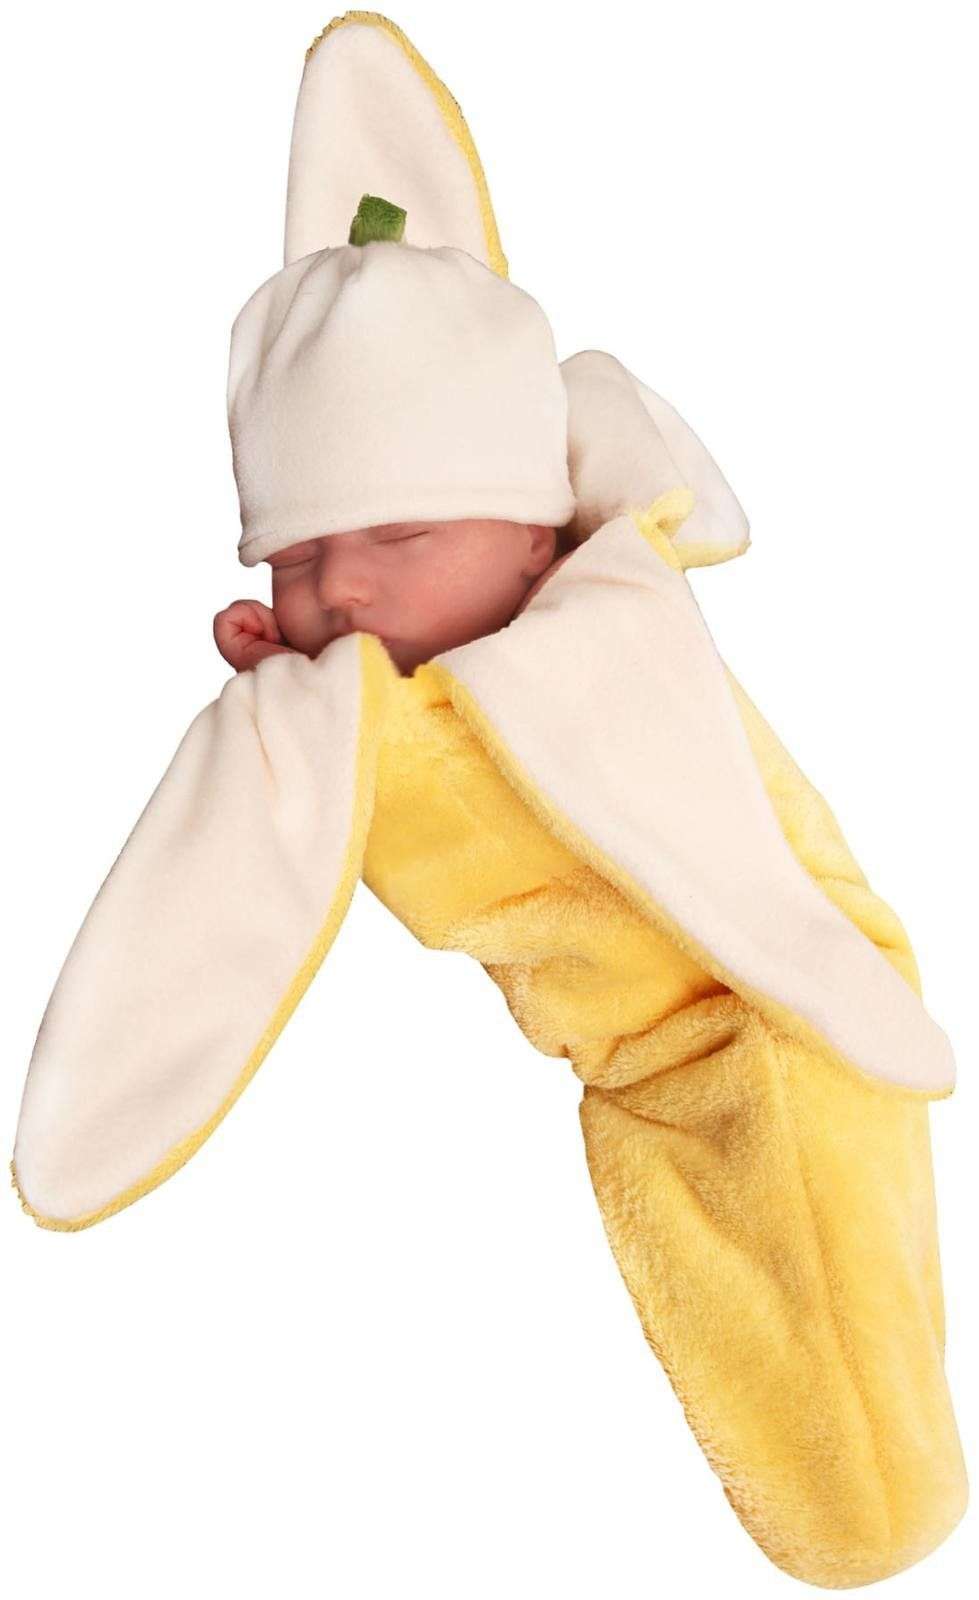 because why not dress up your little munchkin as a banana for